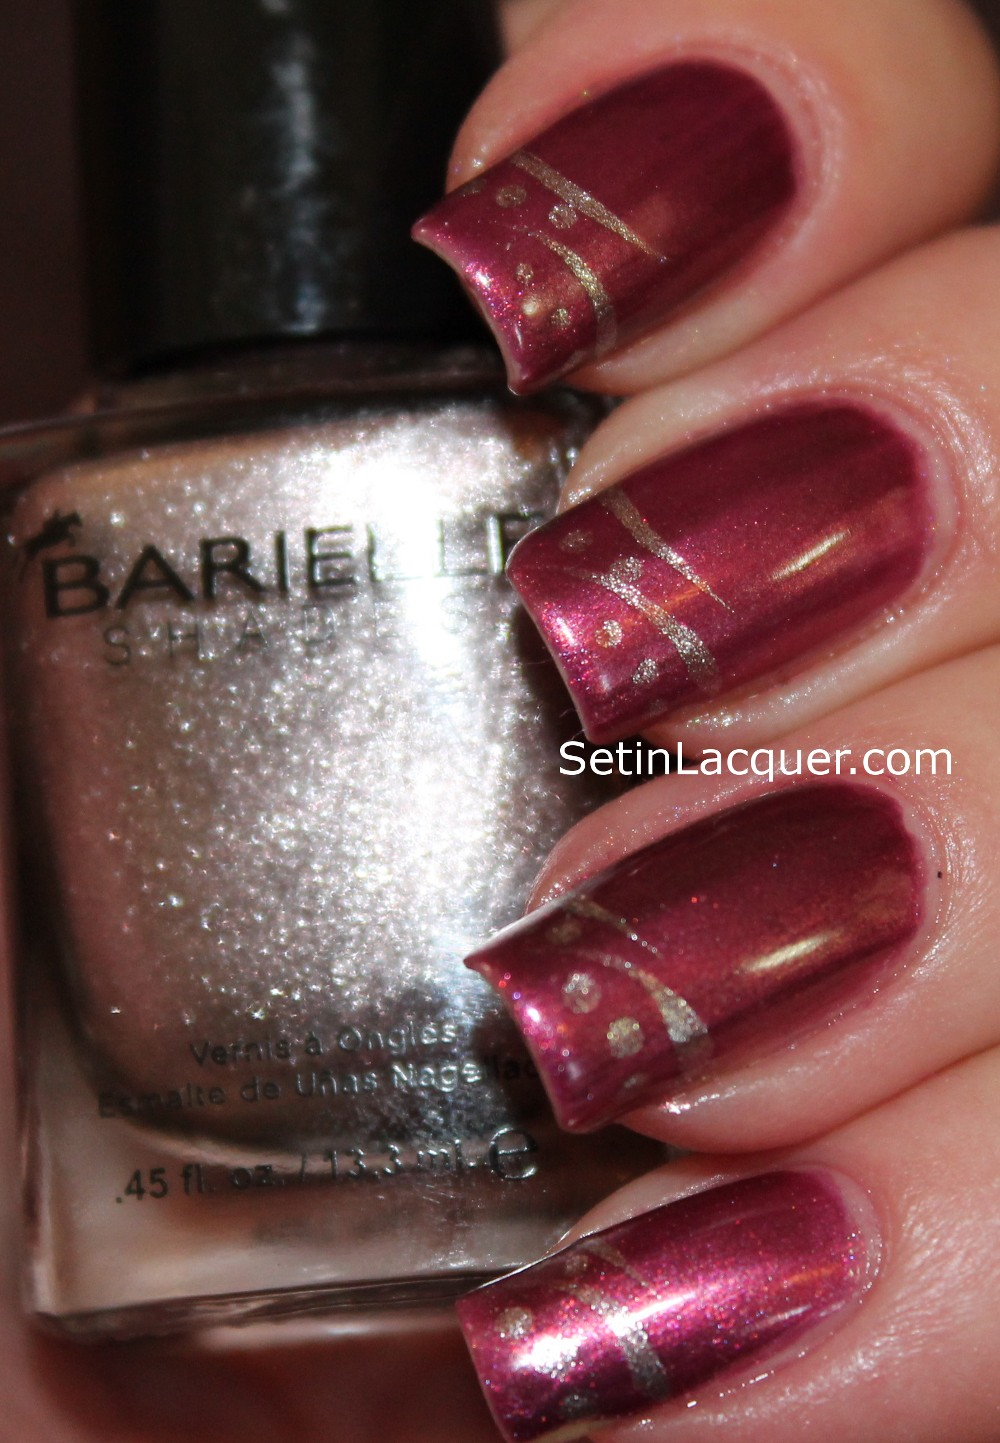 Set in Lacquer: Barielle